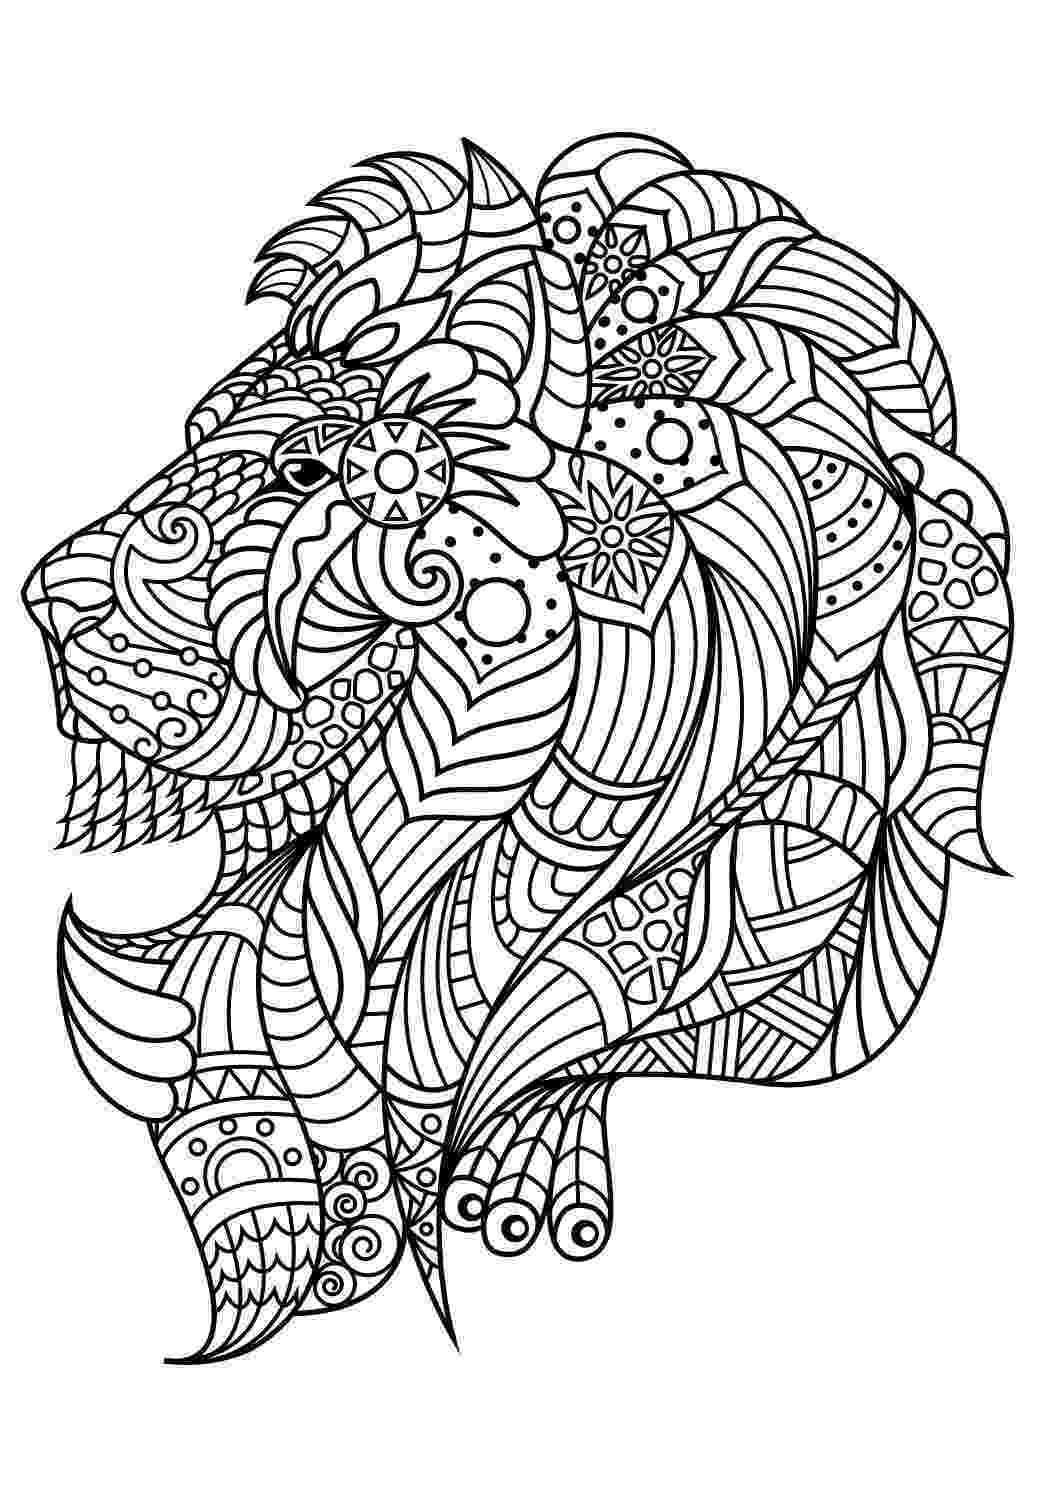 animal coloring book for adults animal coloring pages pdf lion coloring pages mandala animal book for adults coloring